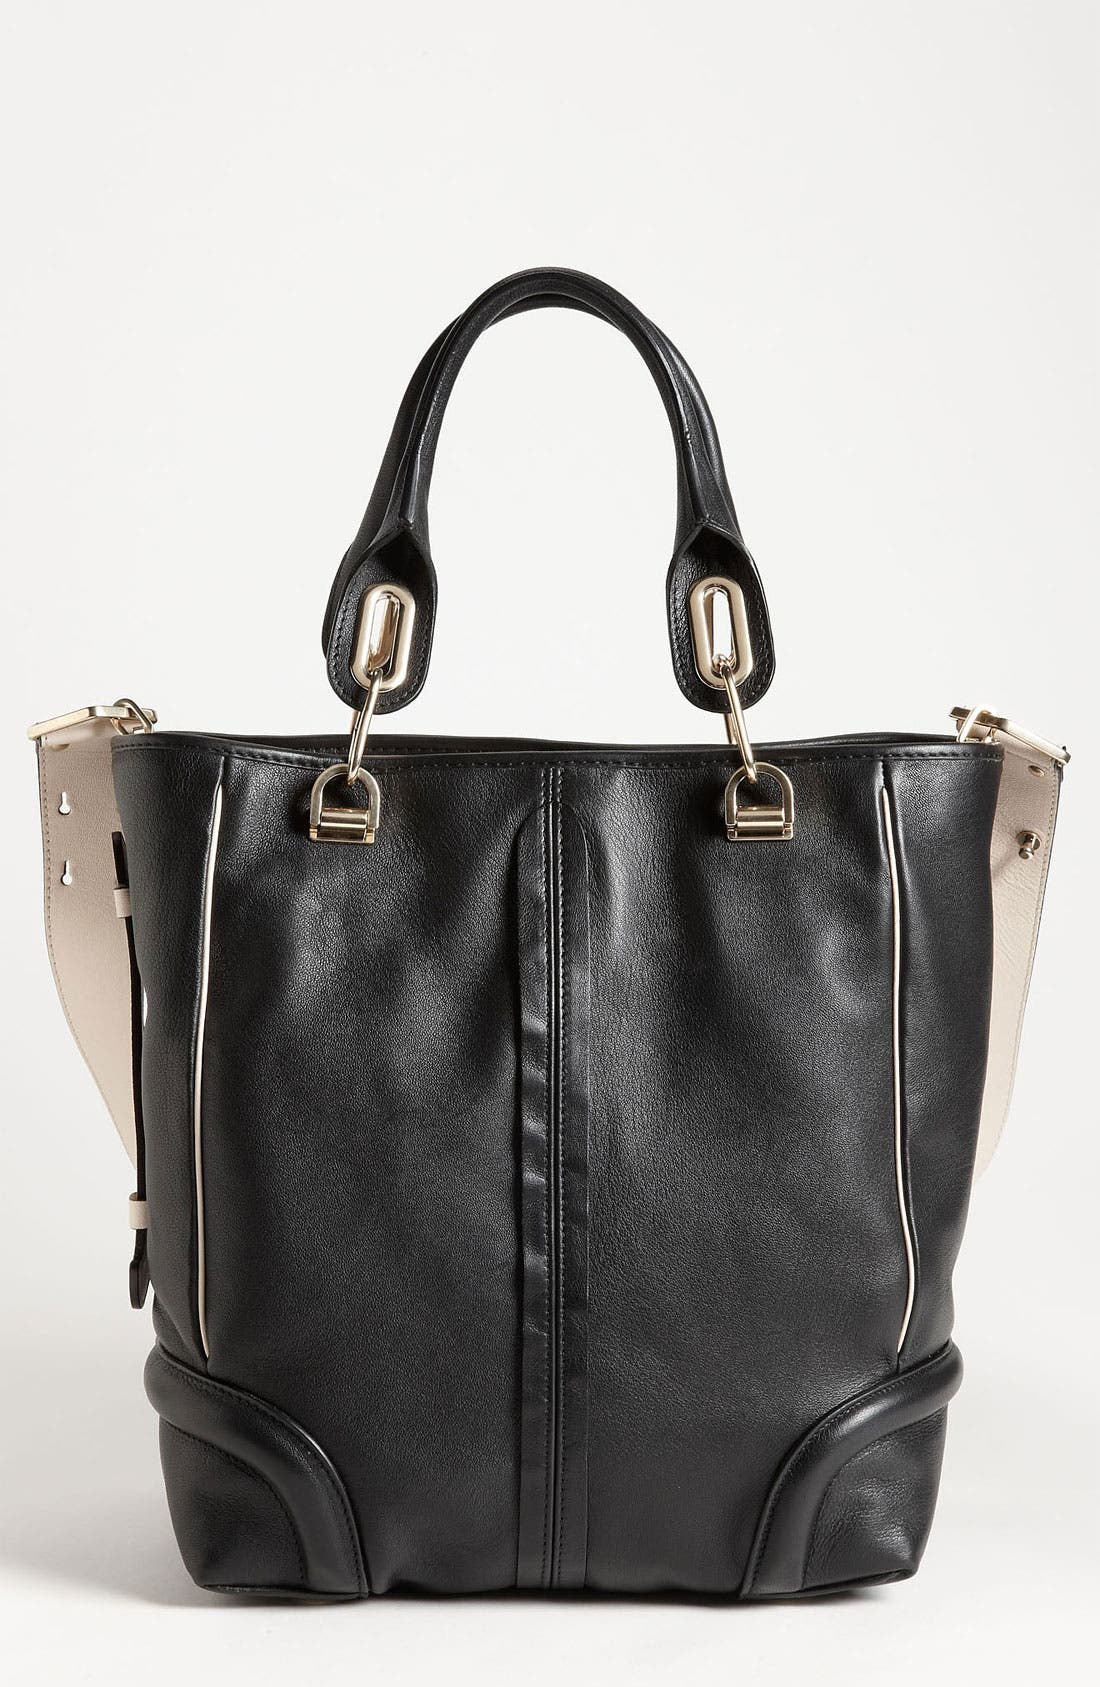 Alternate Image 1 Selected - Chloé 'Military Paraty - Medium' Leather Tote